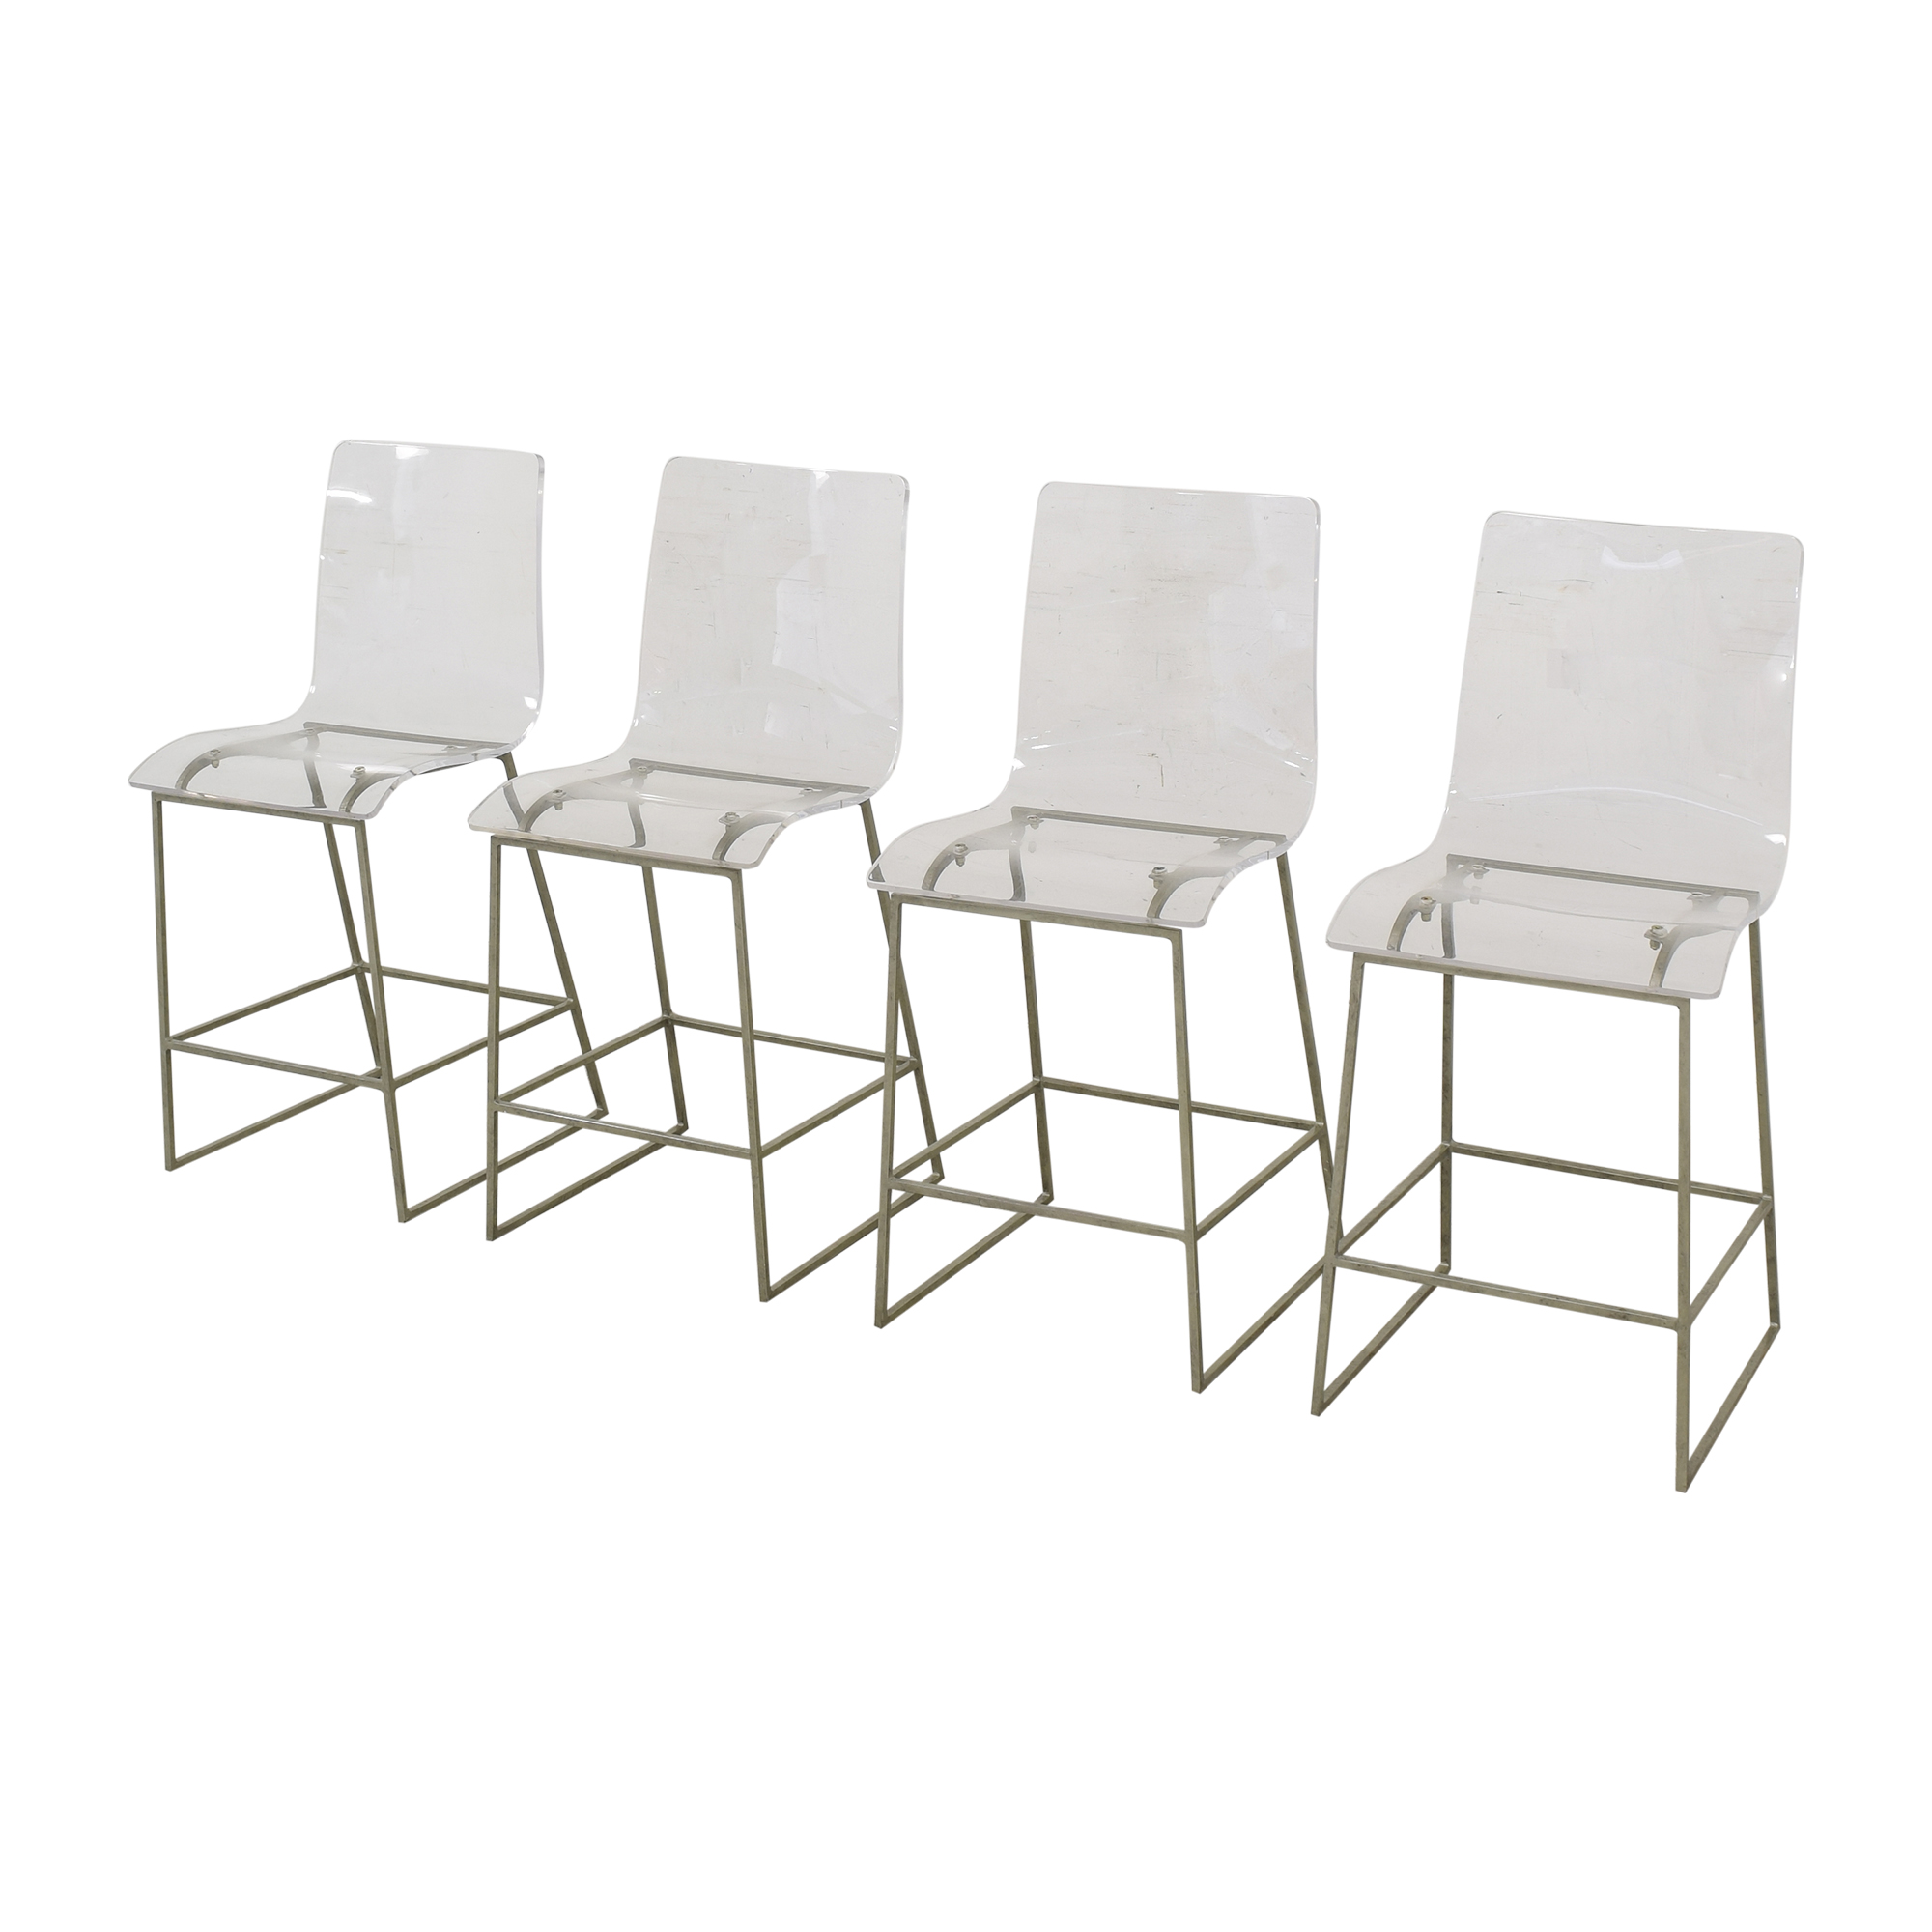 shop Lillian August Counter Stools Lillian August Chairs